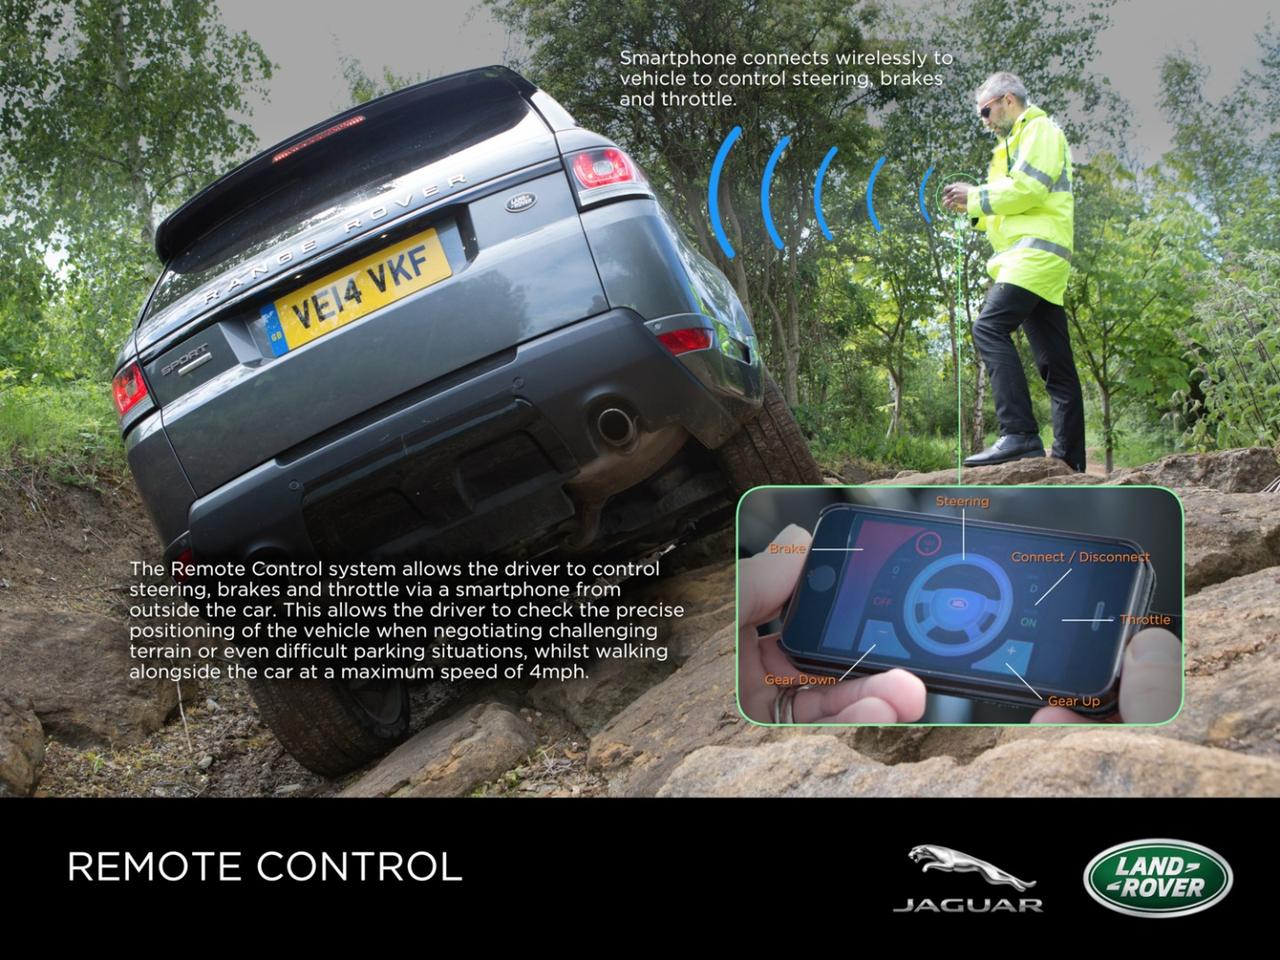 This prototype Range Rover lets you get out of the car and drive it using a smartphone app.